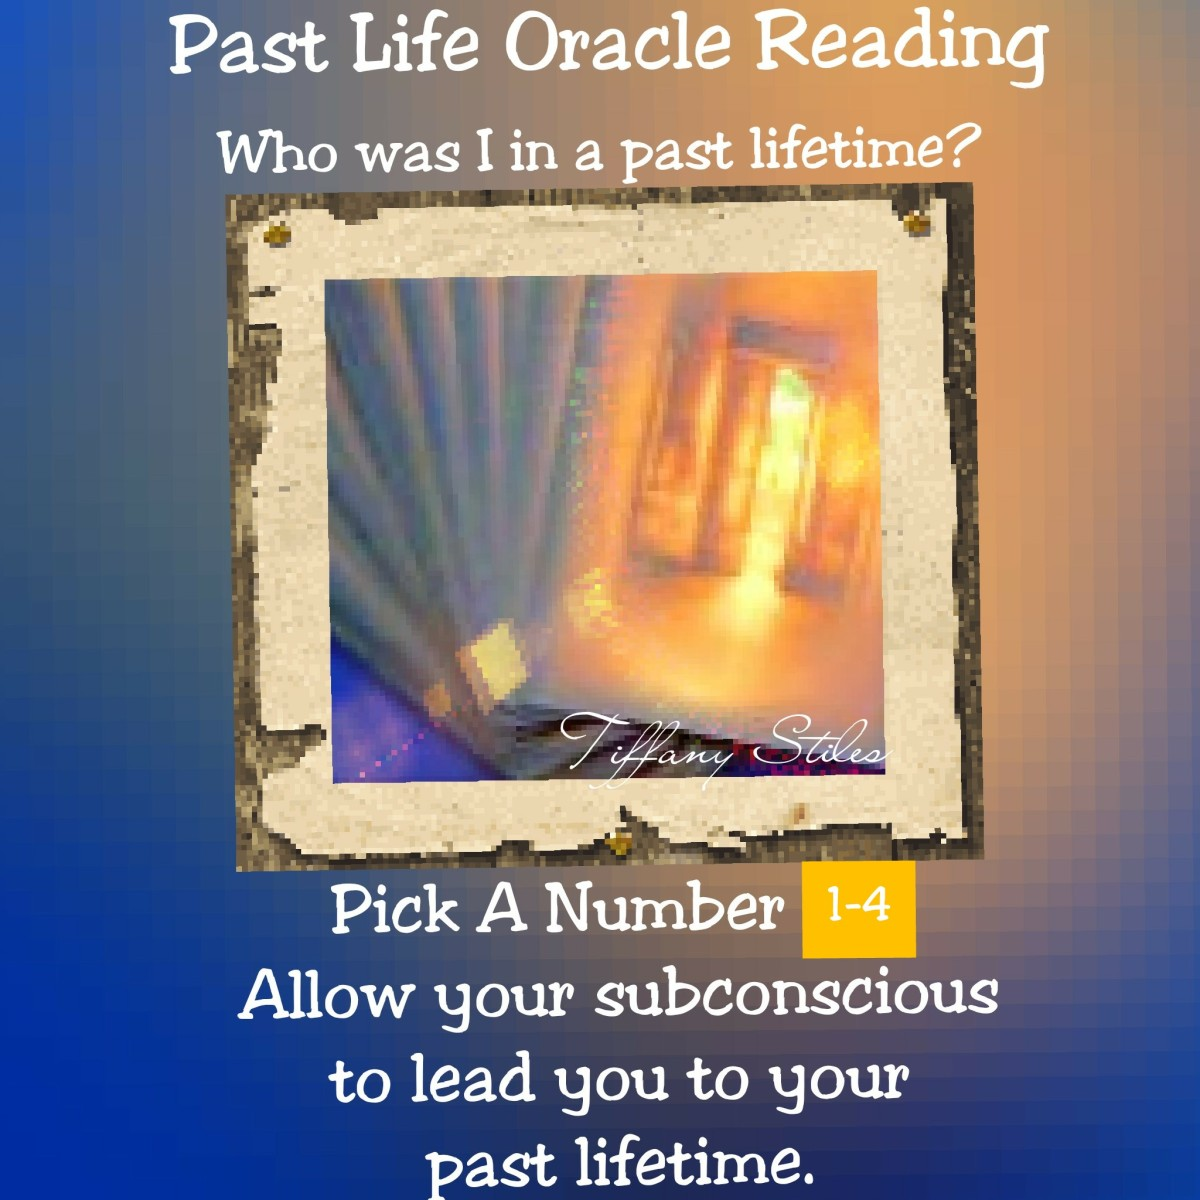 Past Life Oracle Reading~ Who was I in a pastlifetime?